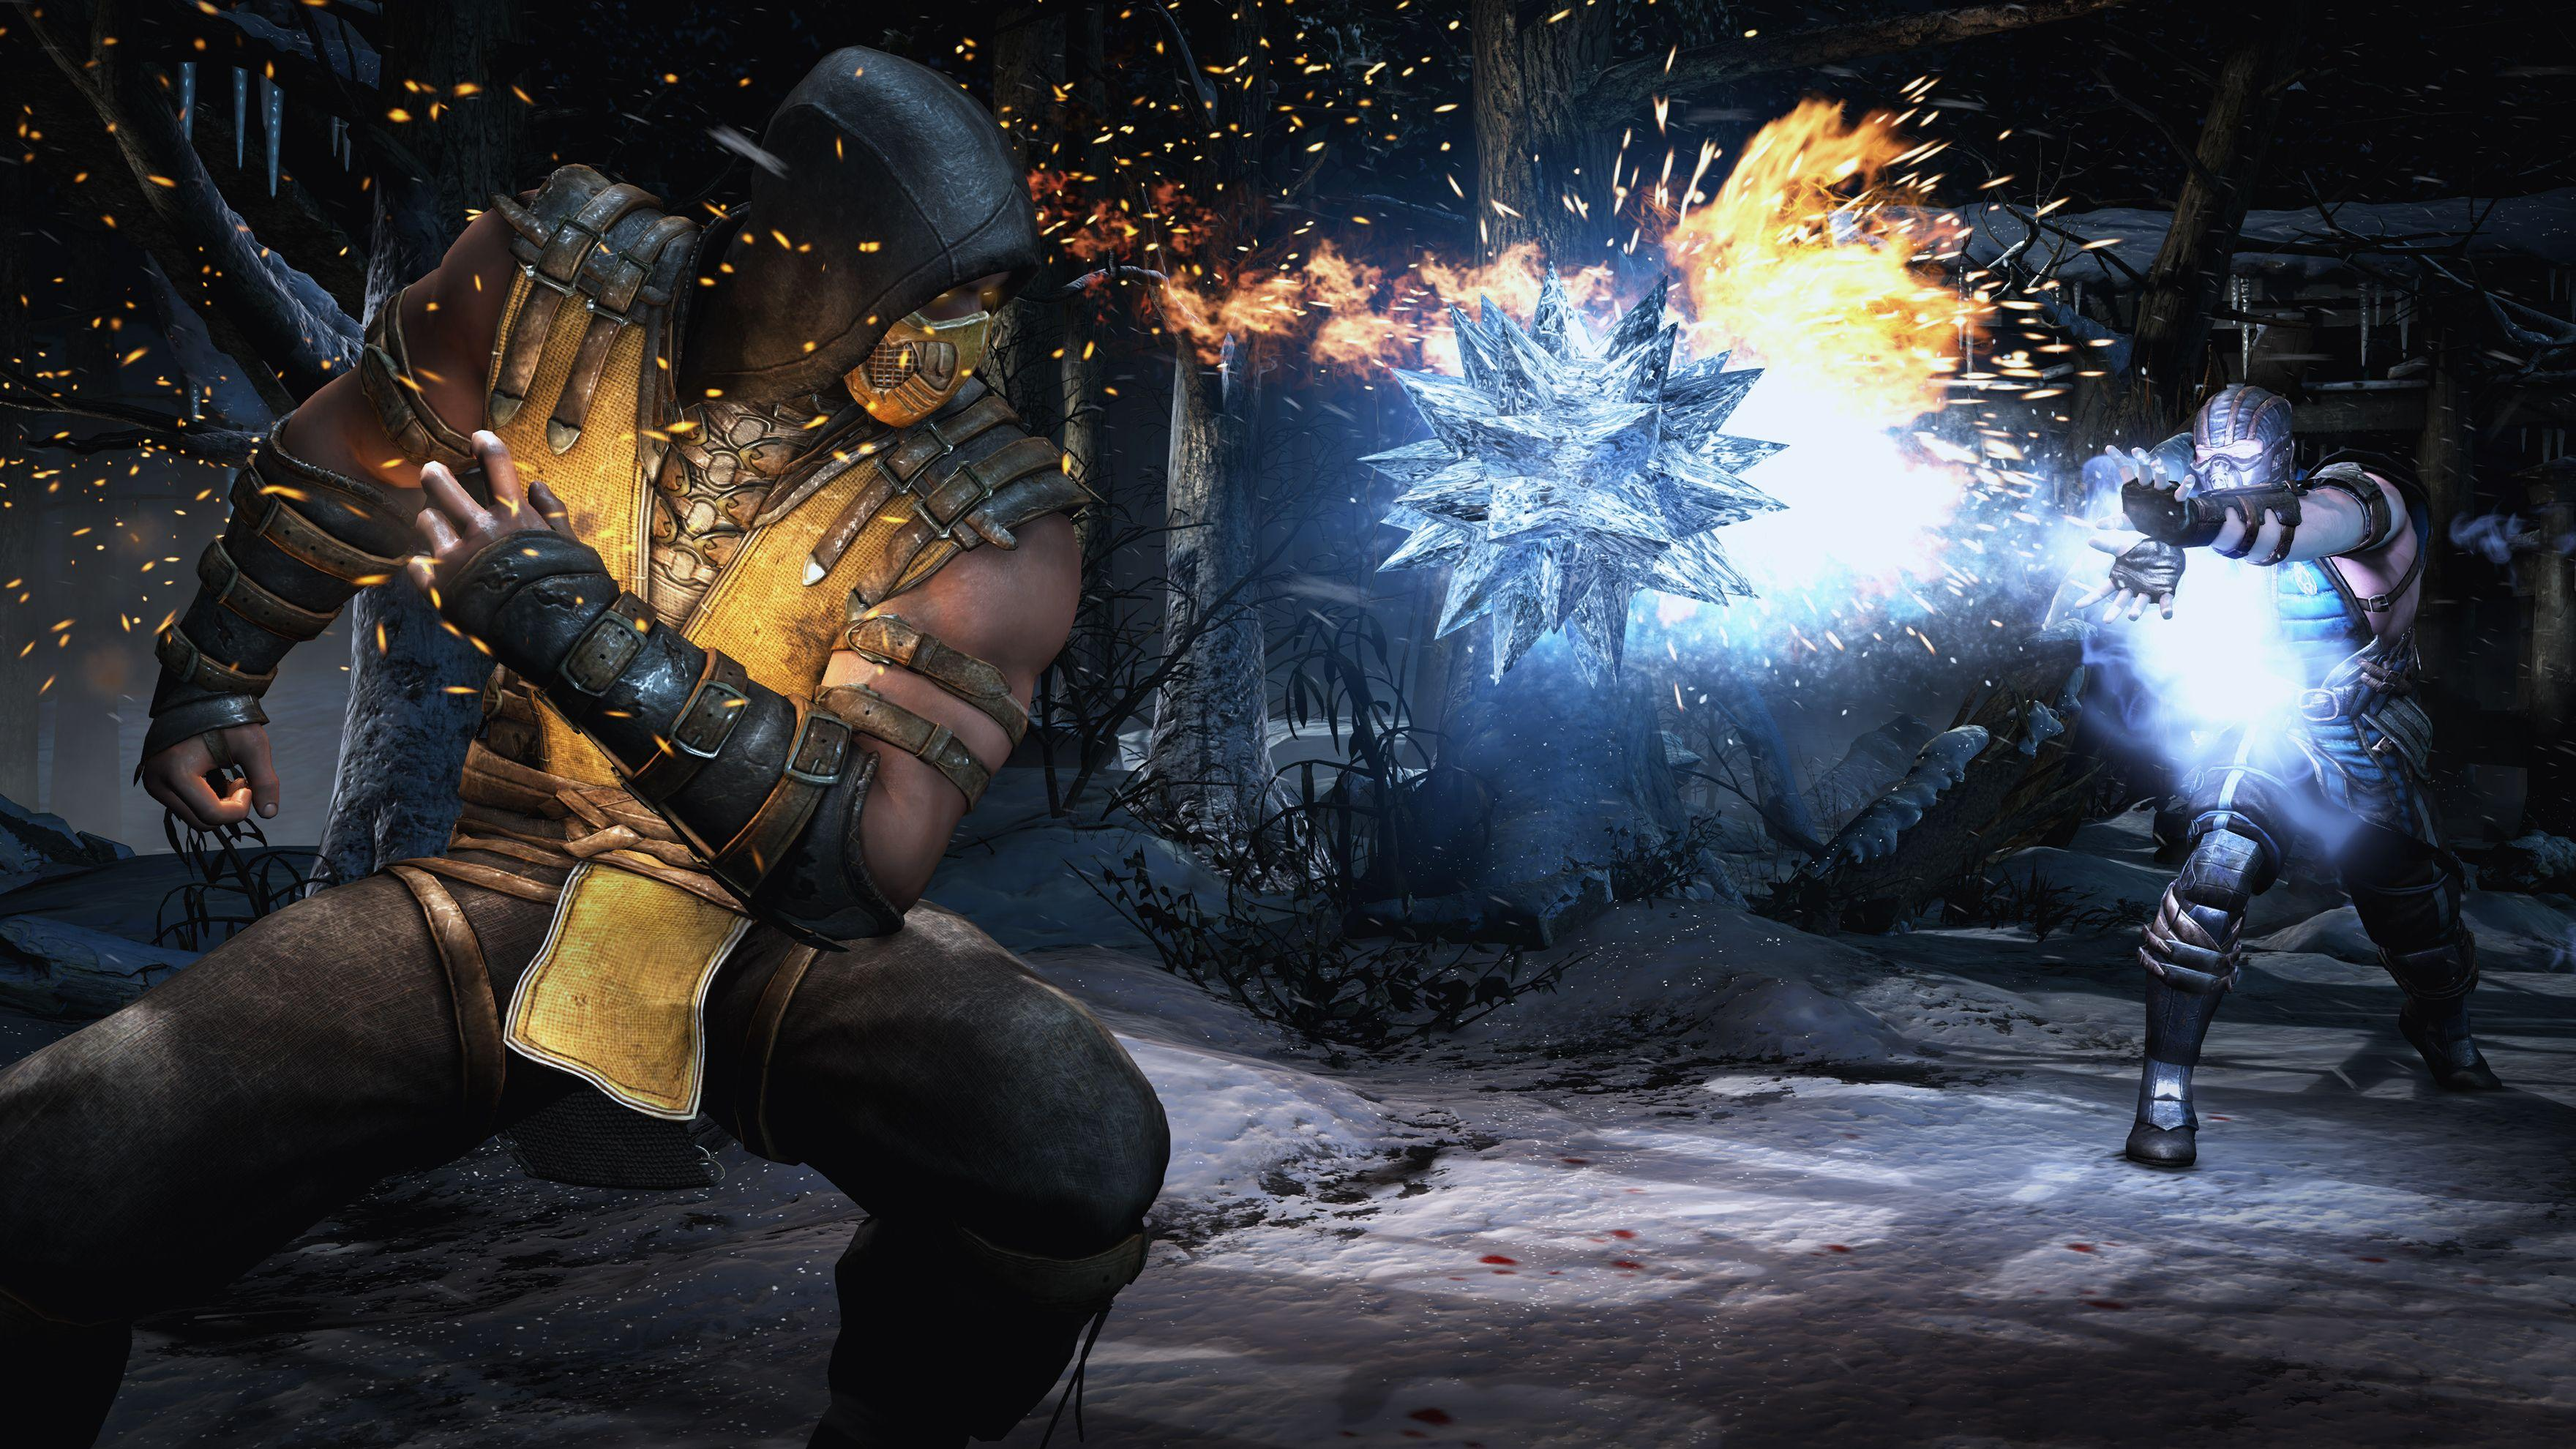 Mortal Kombat X Wallpapers Image Photos Pictures Backgrounds